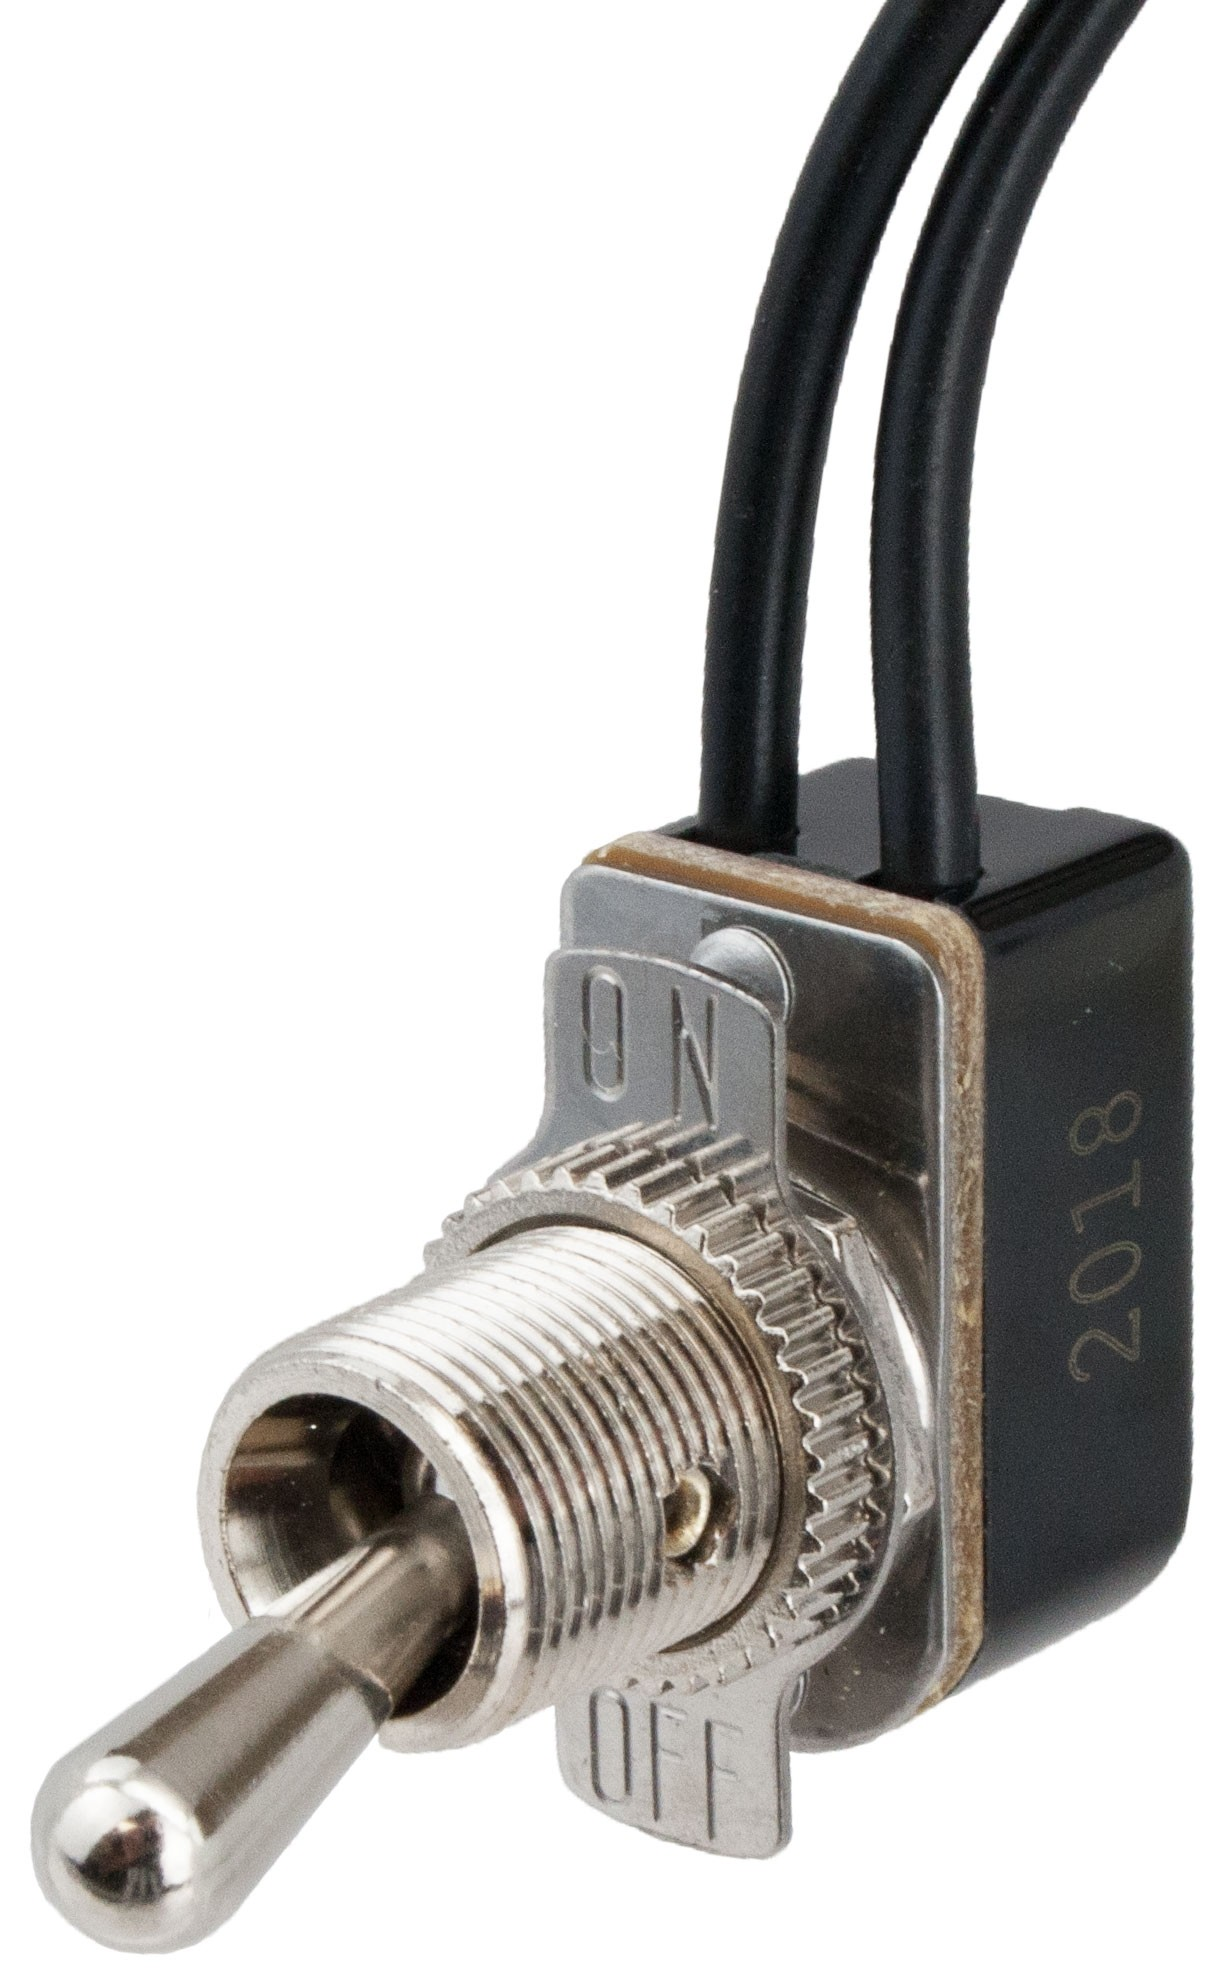 Spst Toggle Switch With Two 6 Inch Wire Leads On Off 765073 15 Amp Single Pole 2 Switches Back And Side Wiring White Be The First To Review This Product